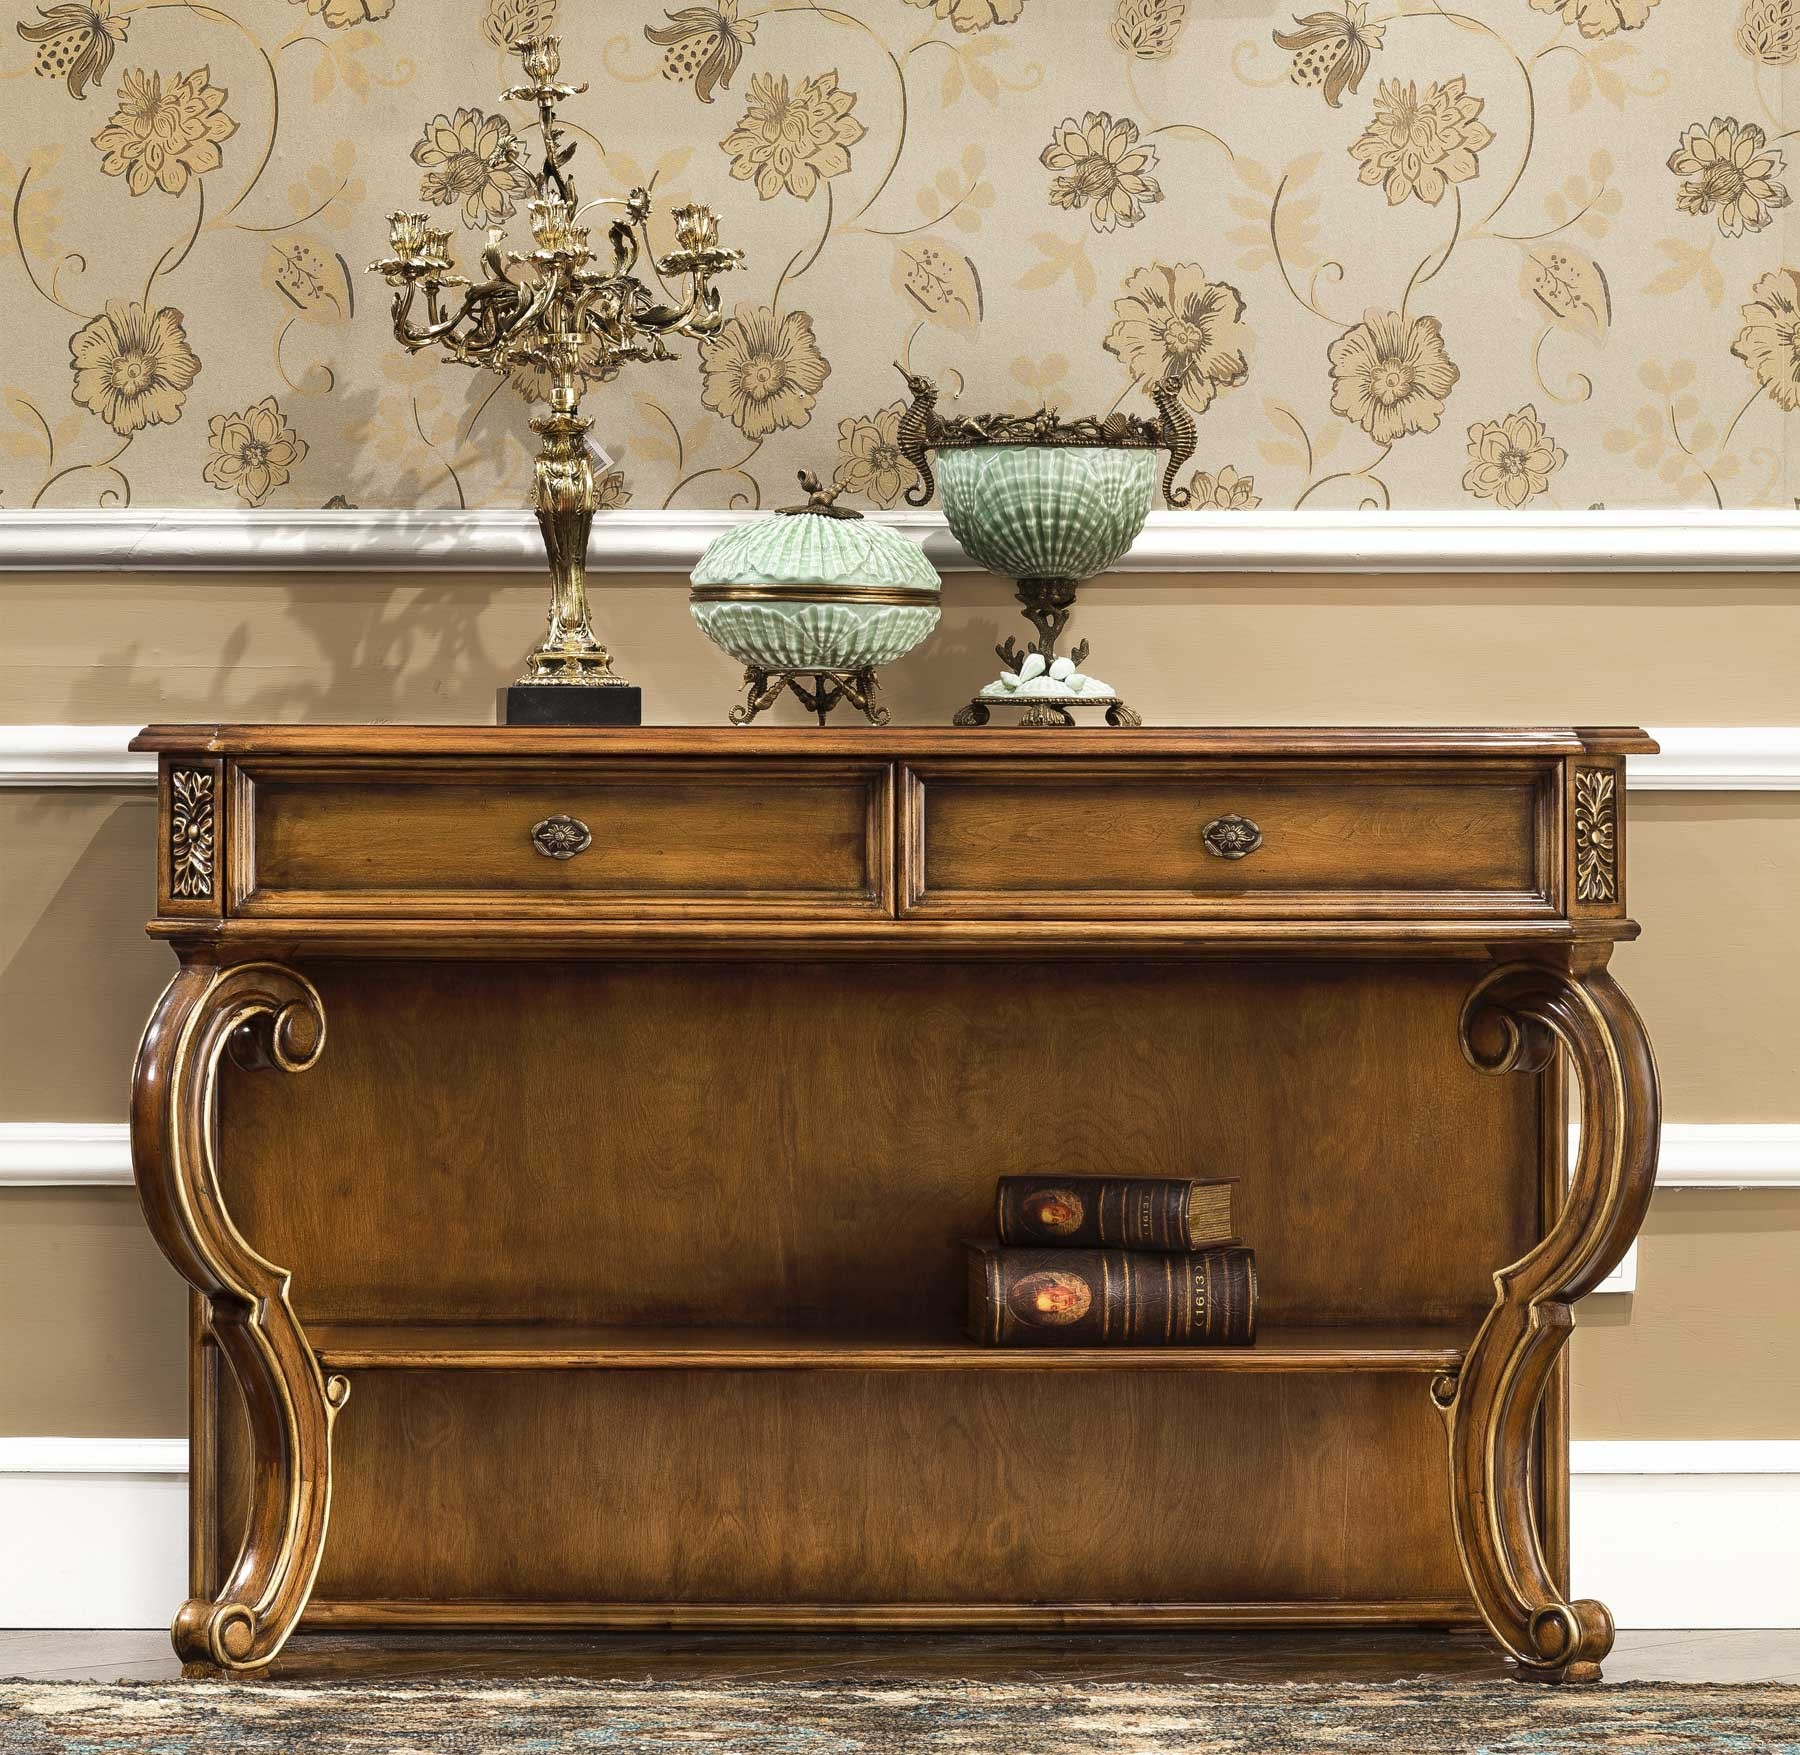 Park Lane Console Table shown in Vintage Cohiba finish